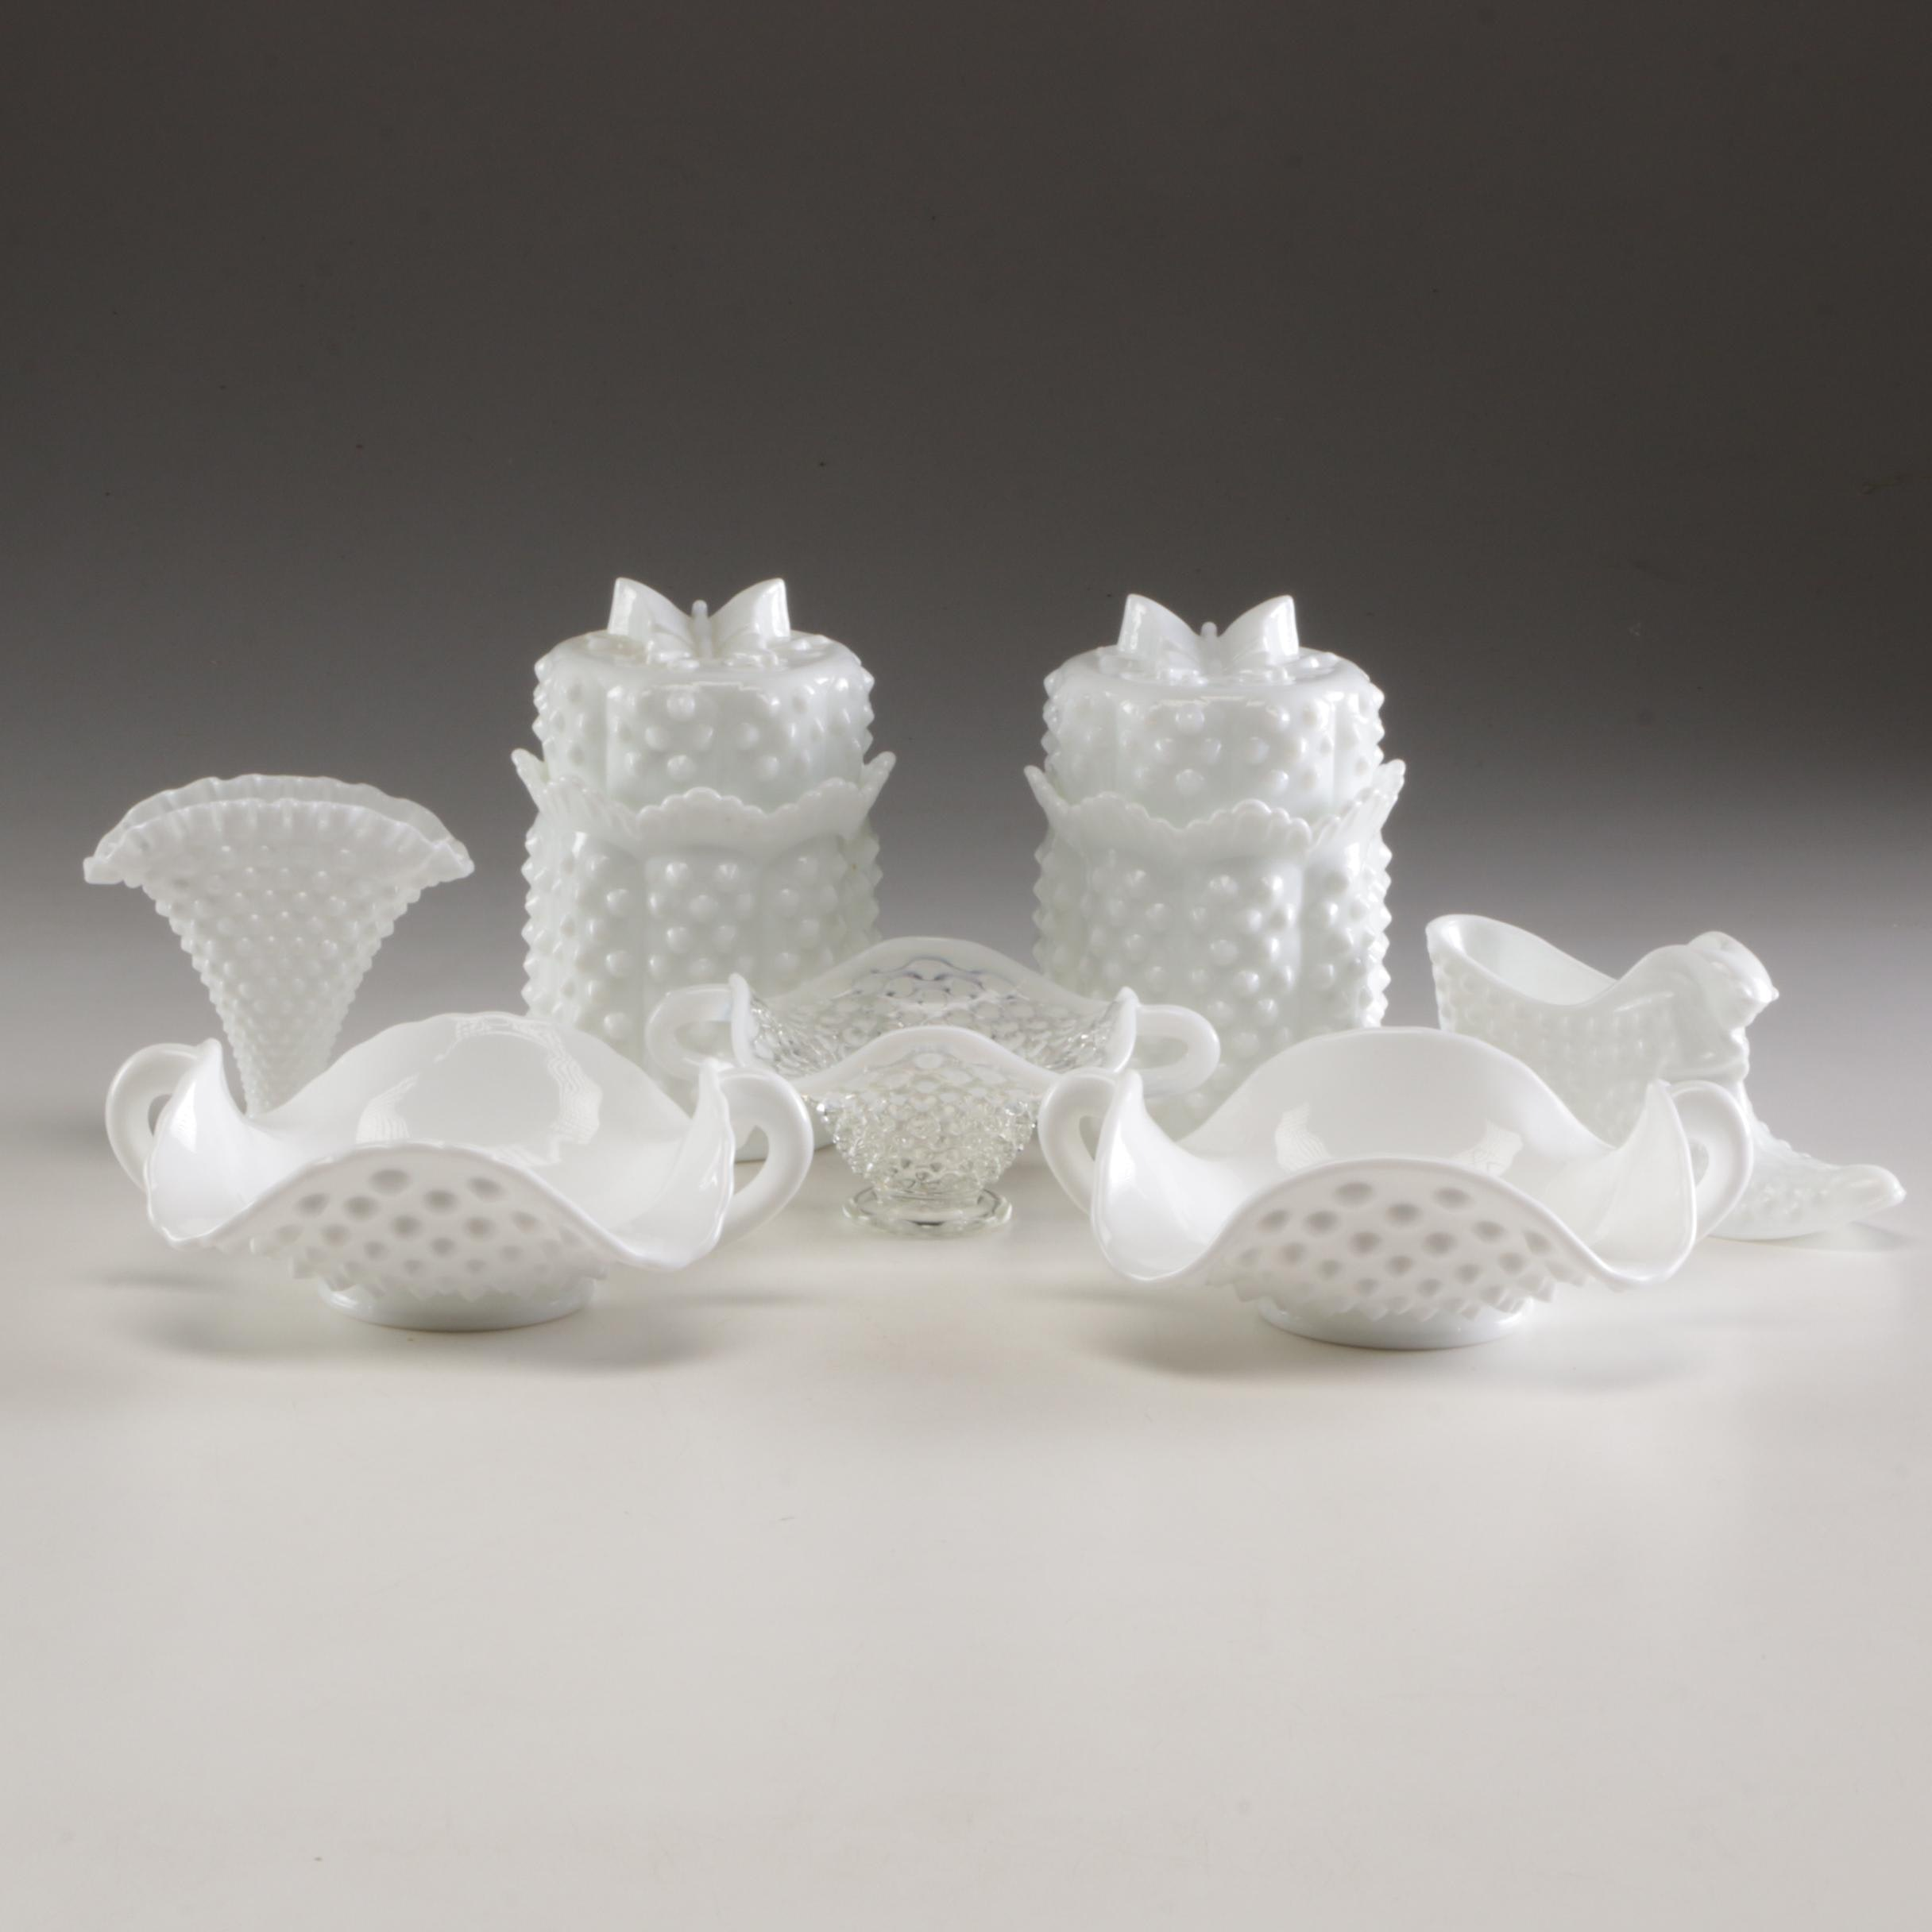 Grouping of Fenton Milk Glass Hobnail Table Decor and Serveware